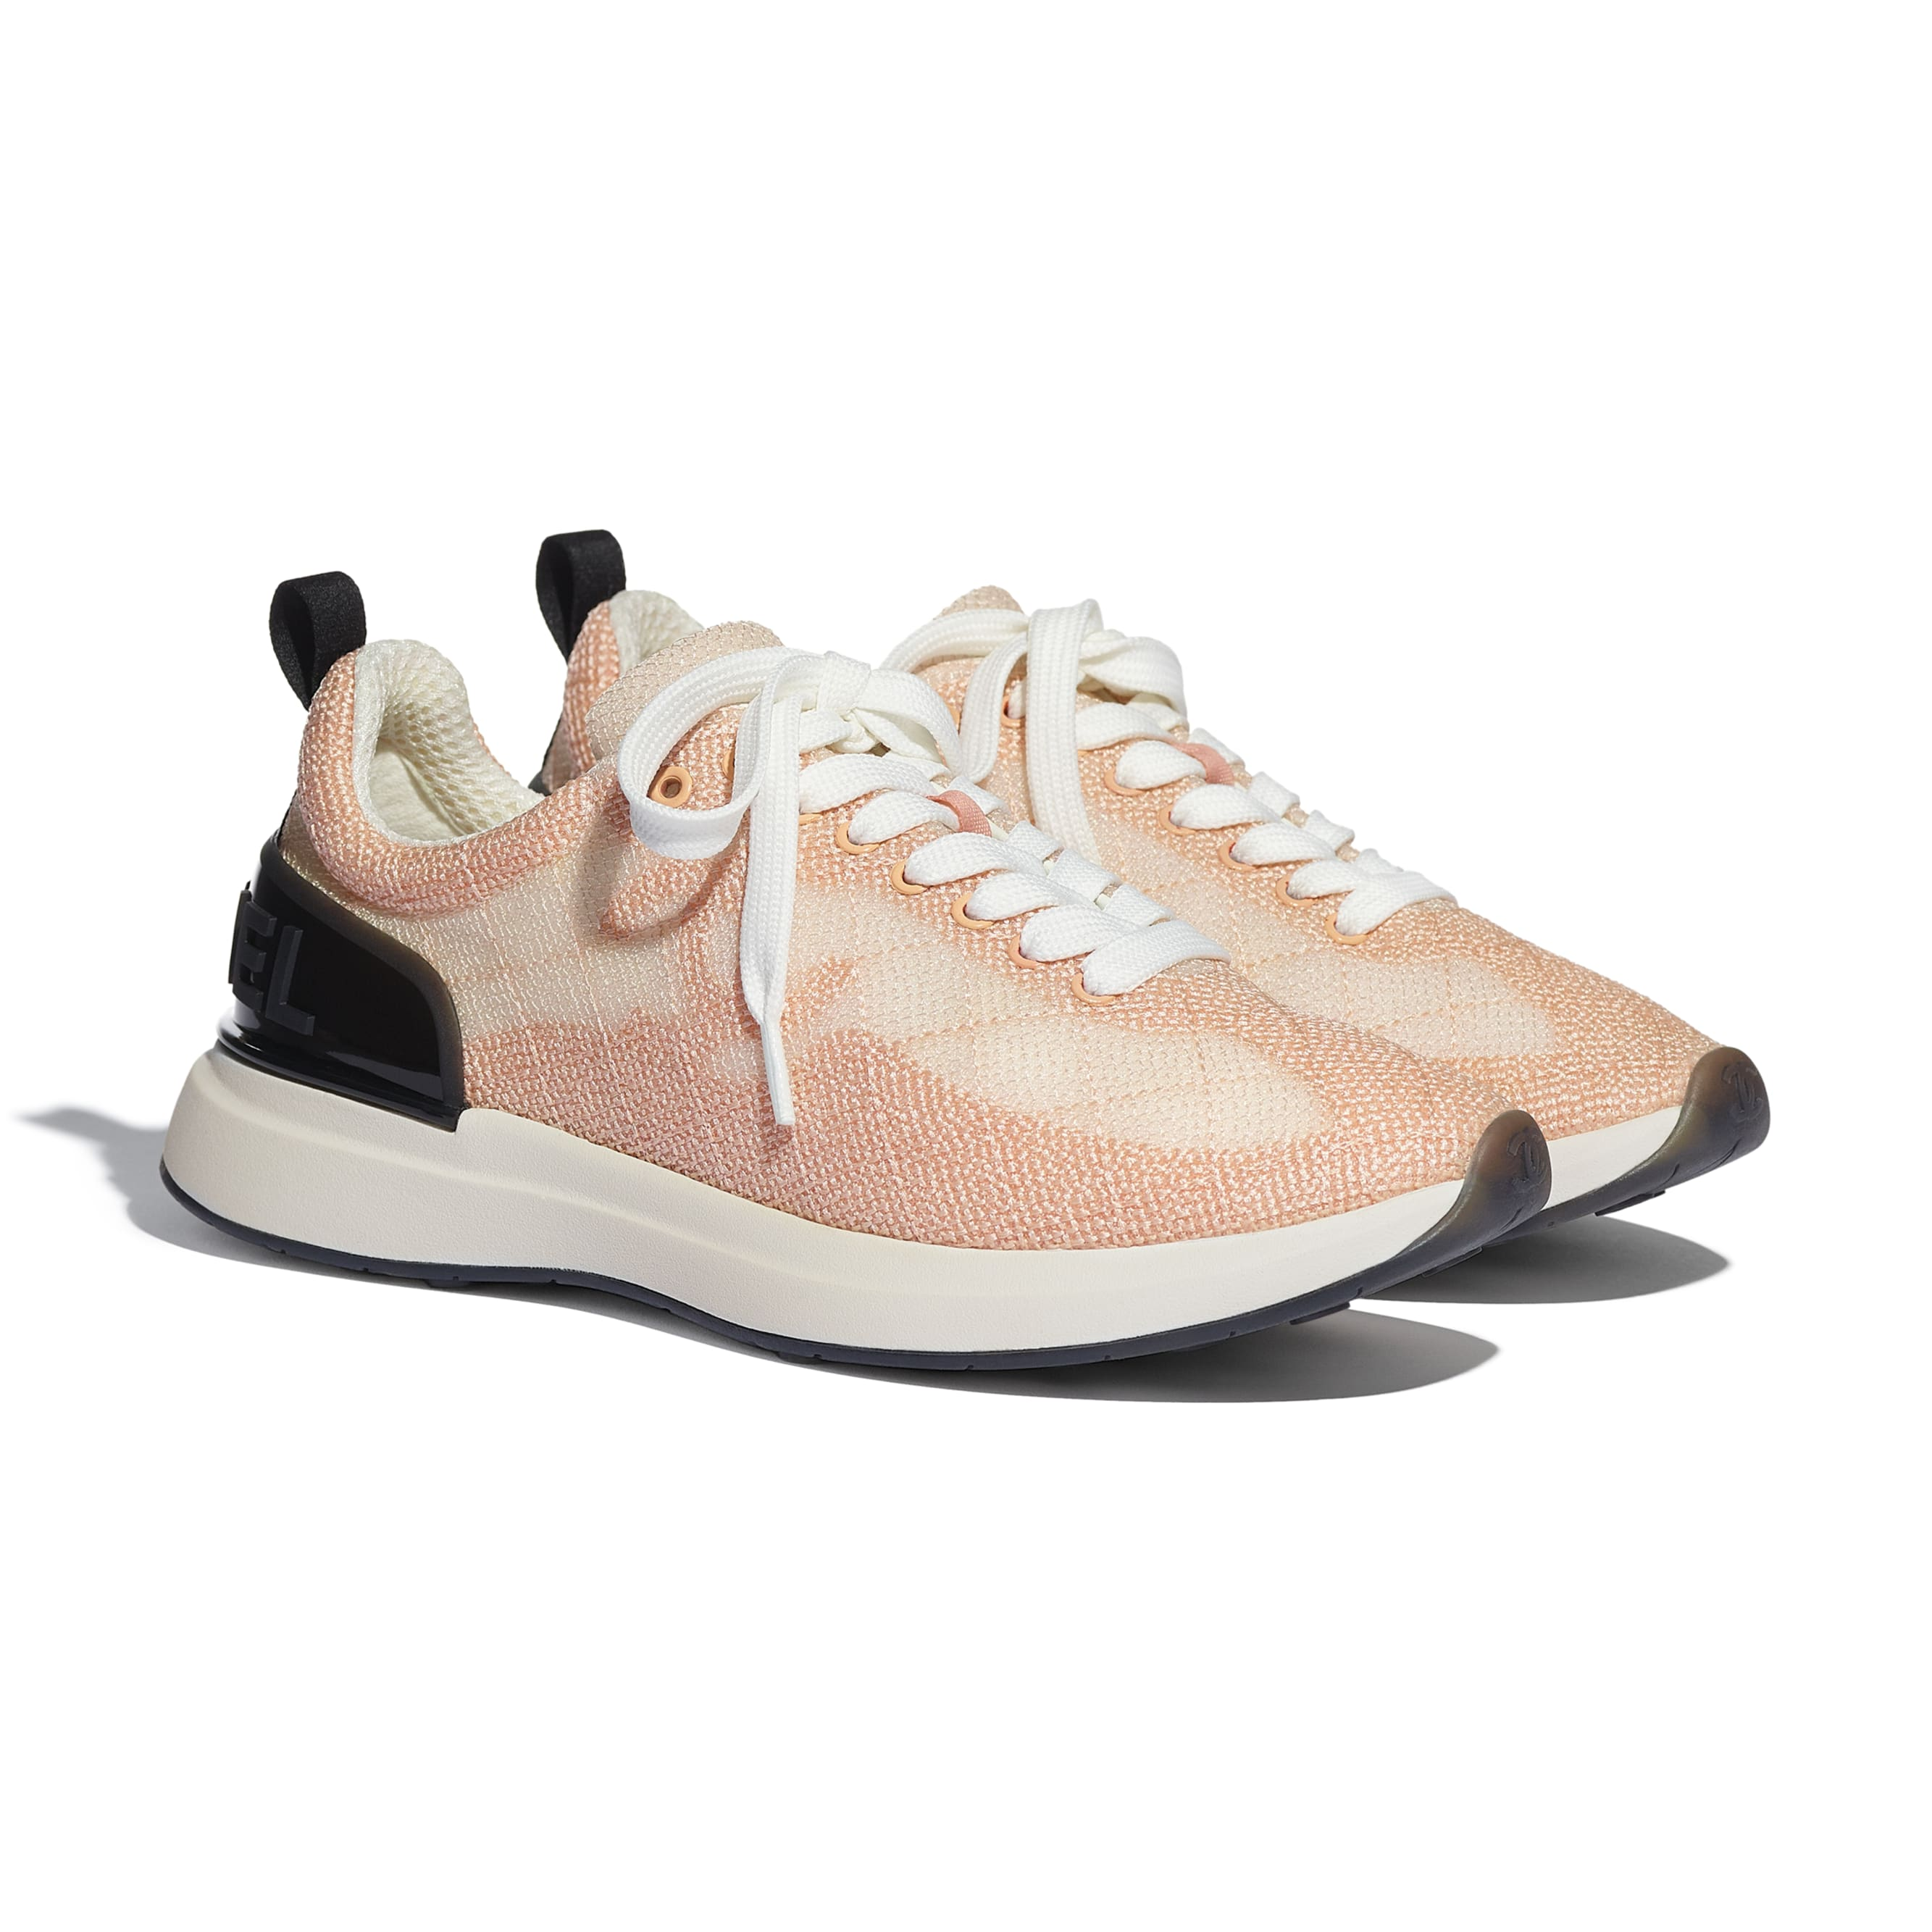 Sneakers - Pale Pink - Embroidered Mesh - CHANEL - Alternative view - see standard sized version